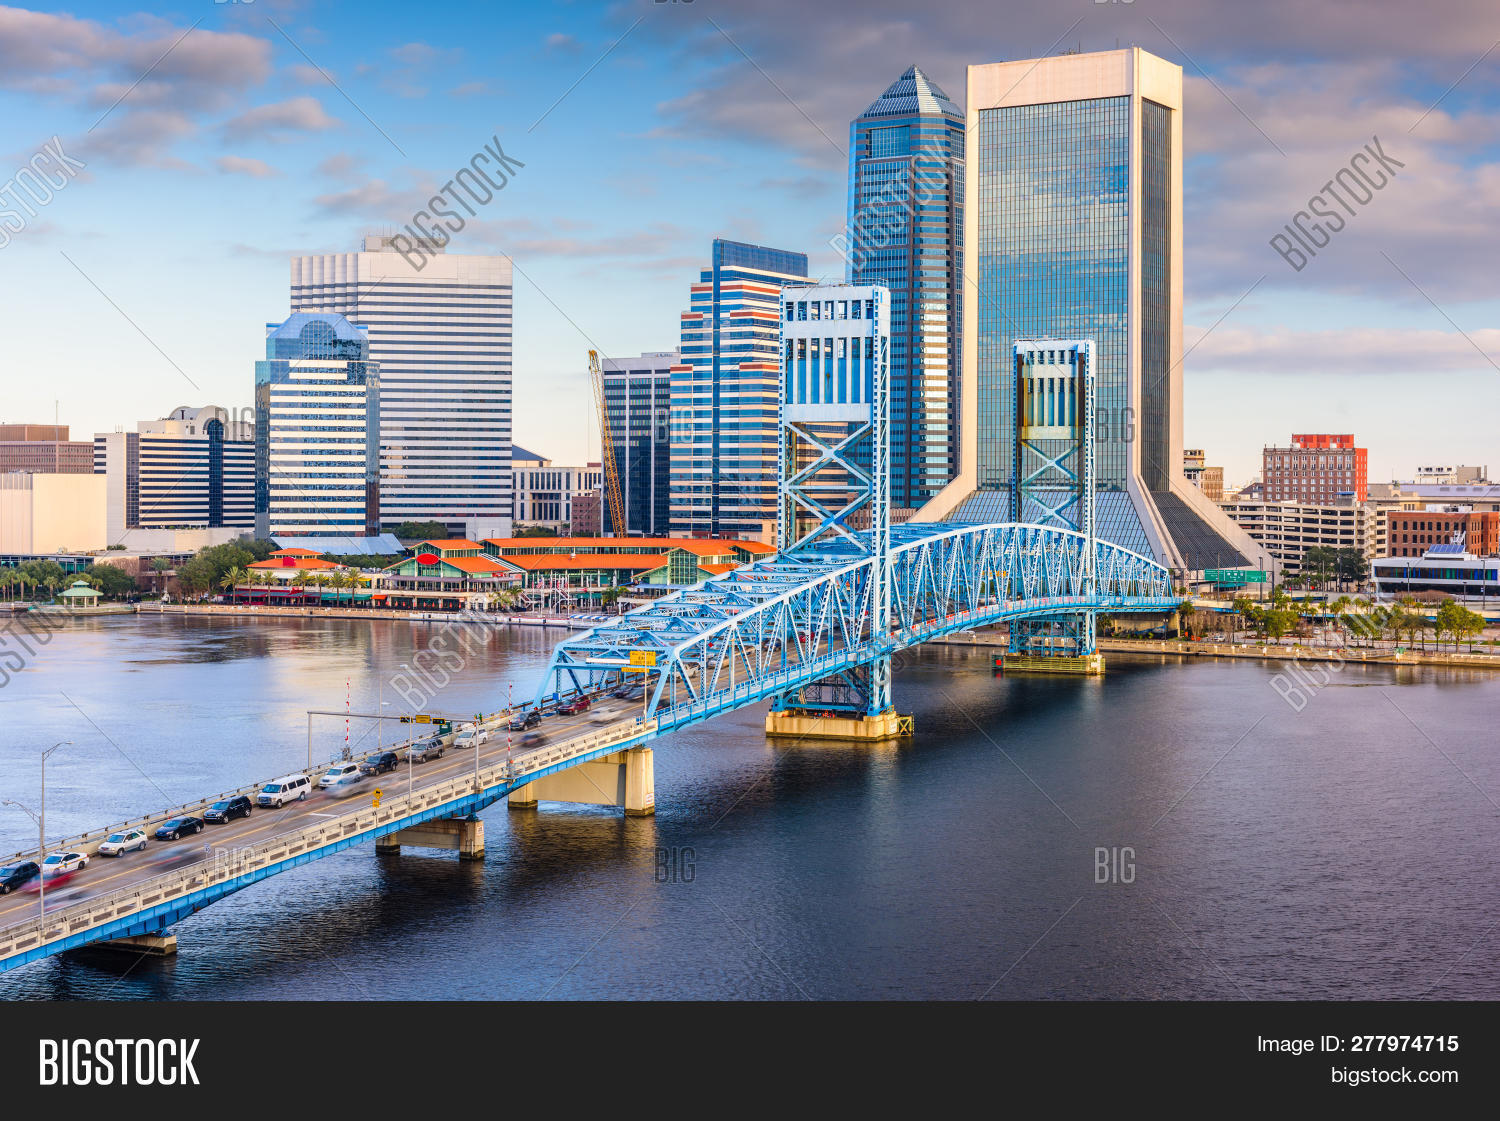 afternoon,america,architecture,bridge,buildings,business,city,cityscape,day,daytime downtown,district,downtown,financial,fl,florida,jacksonville,johns,landmark,landscape,location,metropolis,modern,morning,office,park,place,river,riverfront,riverwalk,road,saint,scene,scenery,scenic,skyline,south,southern,st,st.,states,street,tourism,town,travel,united states,us,usa,view,water,waterfront